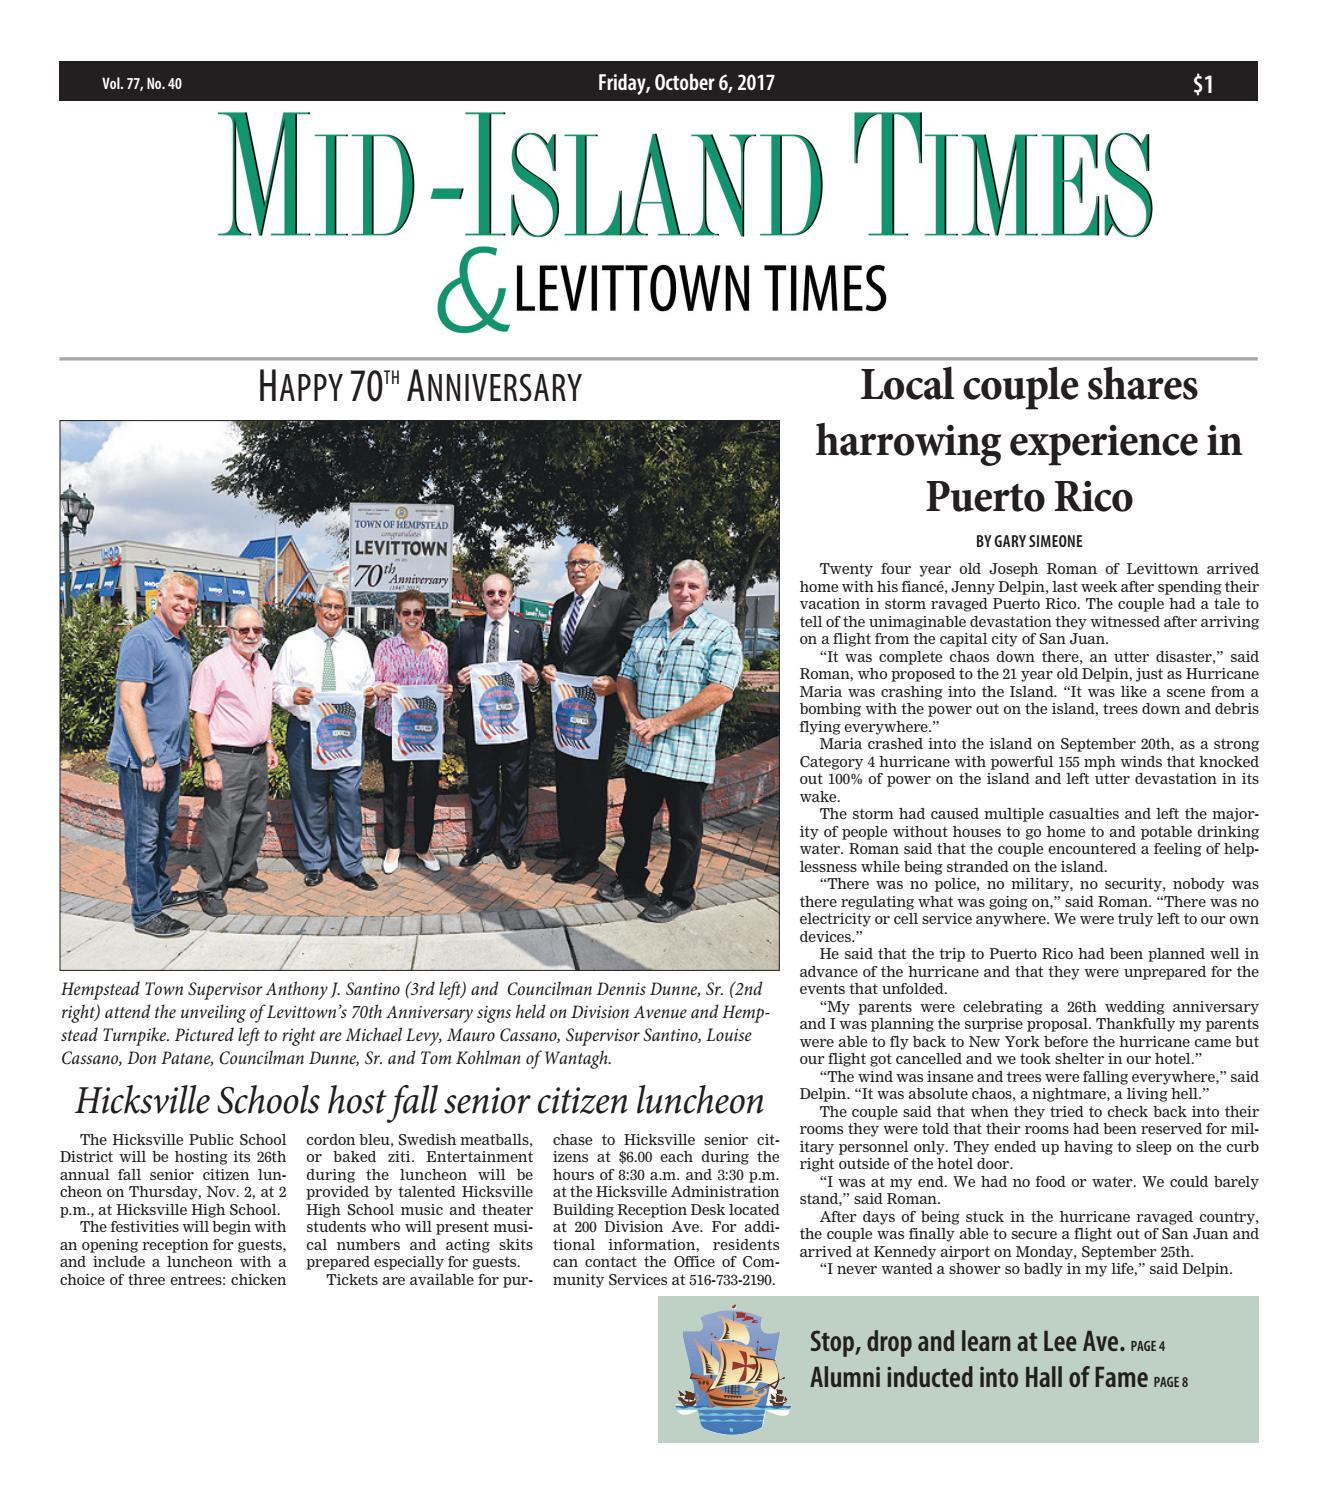 Mid-Island Times & Levittown News by Litmor Publishing - issuu